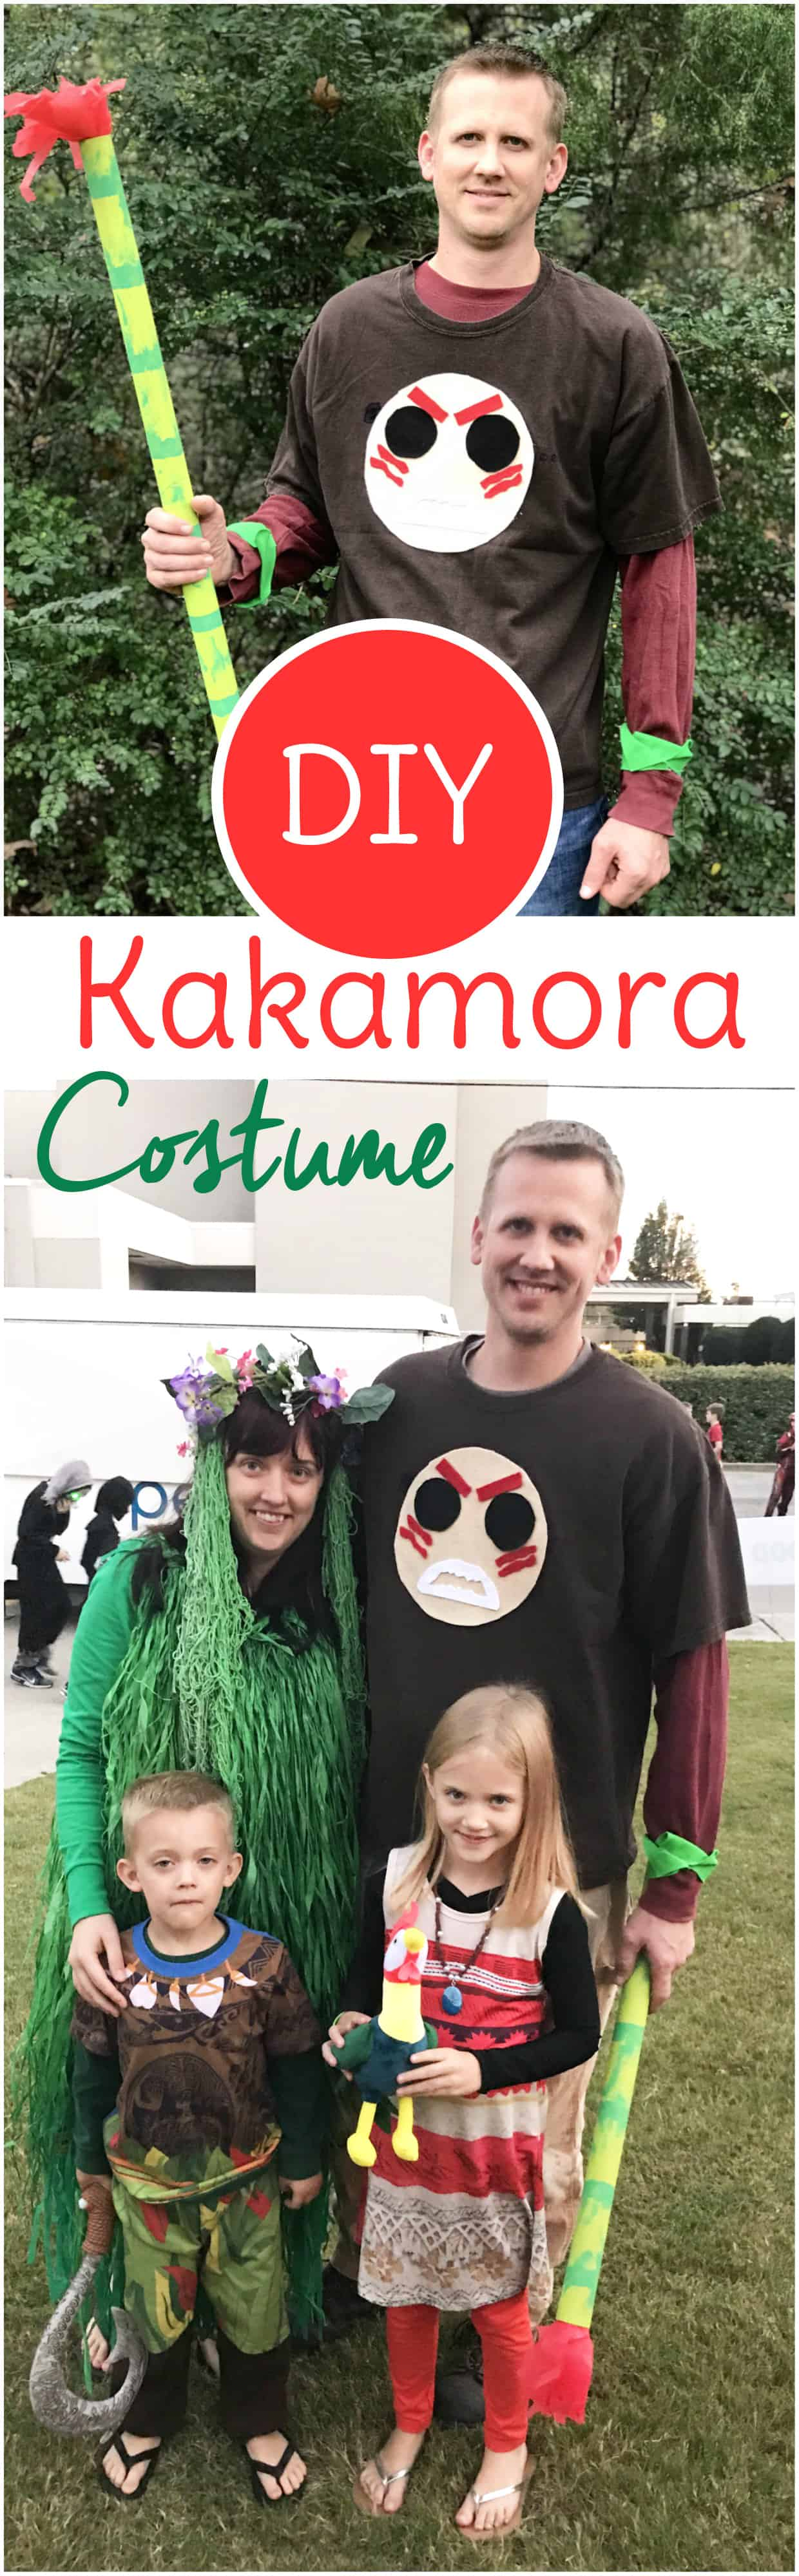 DIY kakamora costume for your Moana family costumes this year!